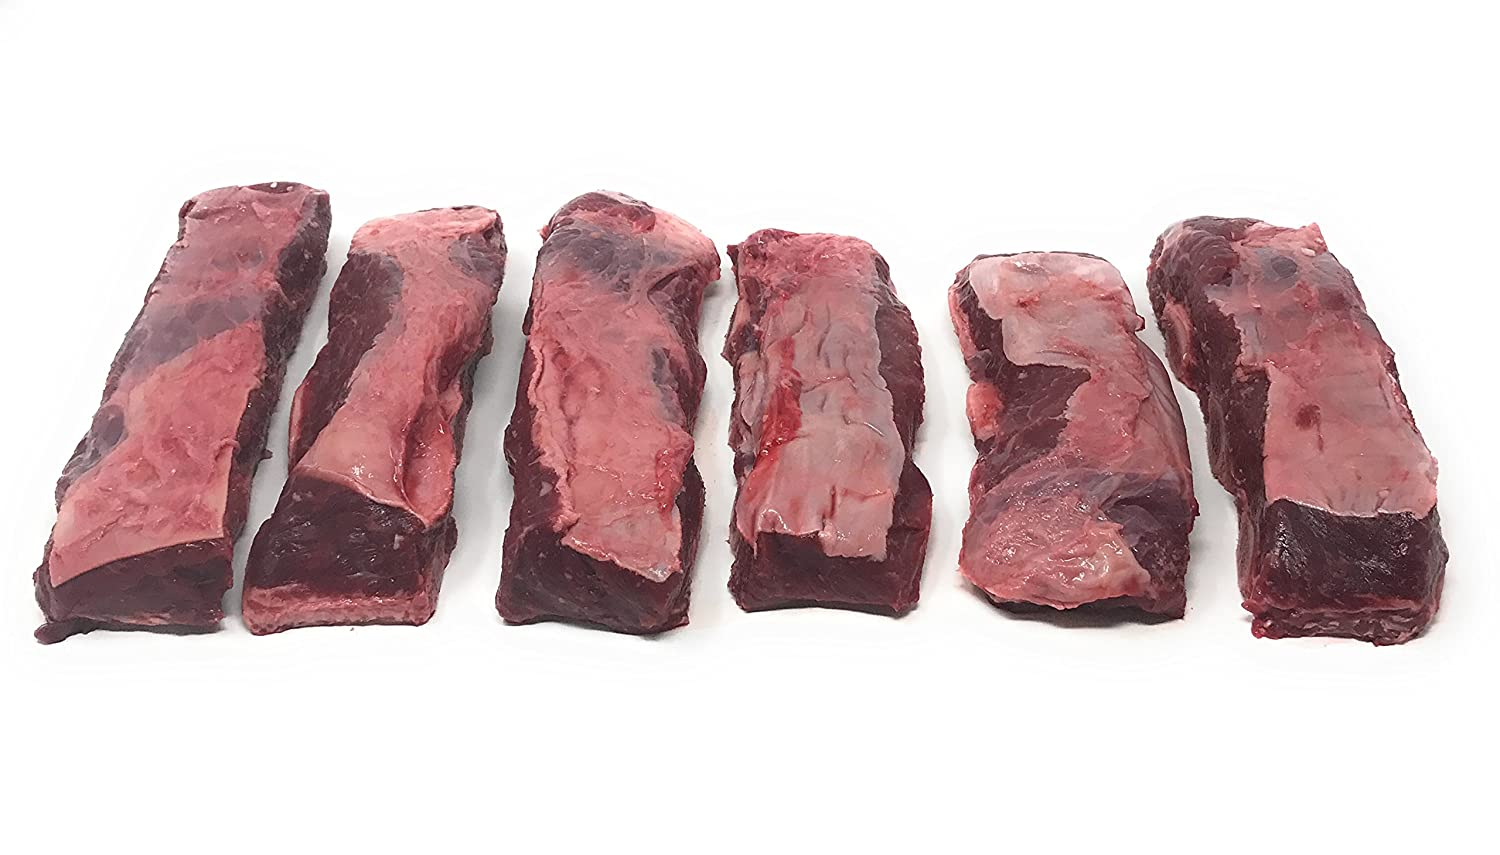 Bison Bone-In Short Ribs: 100% All-Natural, Grass-Fed and Grain Finished North American Buffalo Meat with no Growth Hormones or Antibiotics - USDA Tested - 6 Pieces, Total 5 lbs. of Flavorful Meat